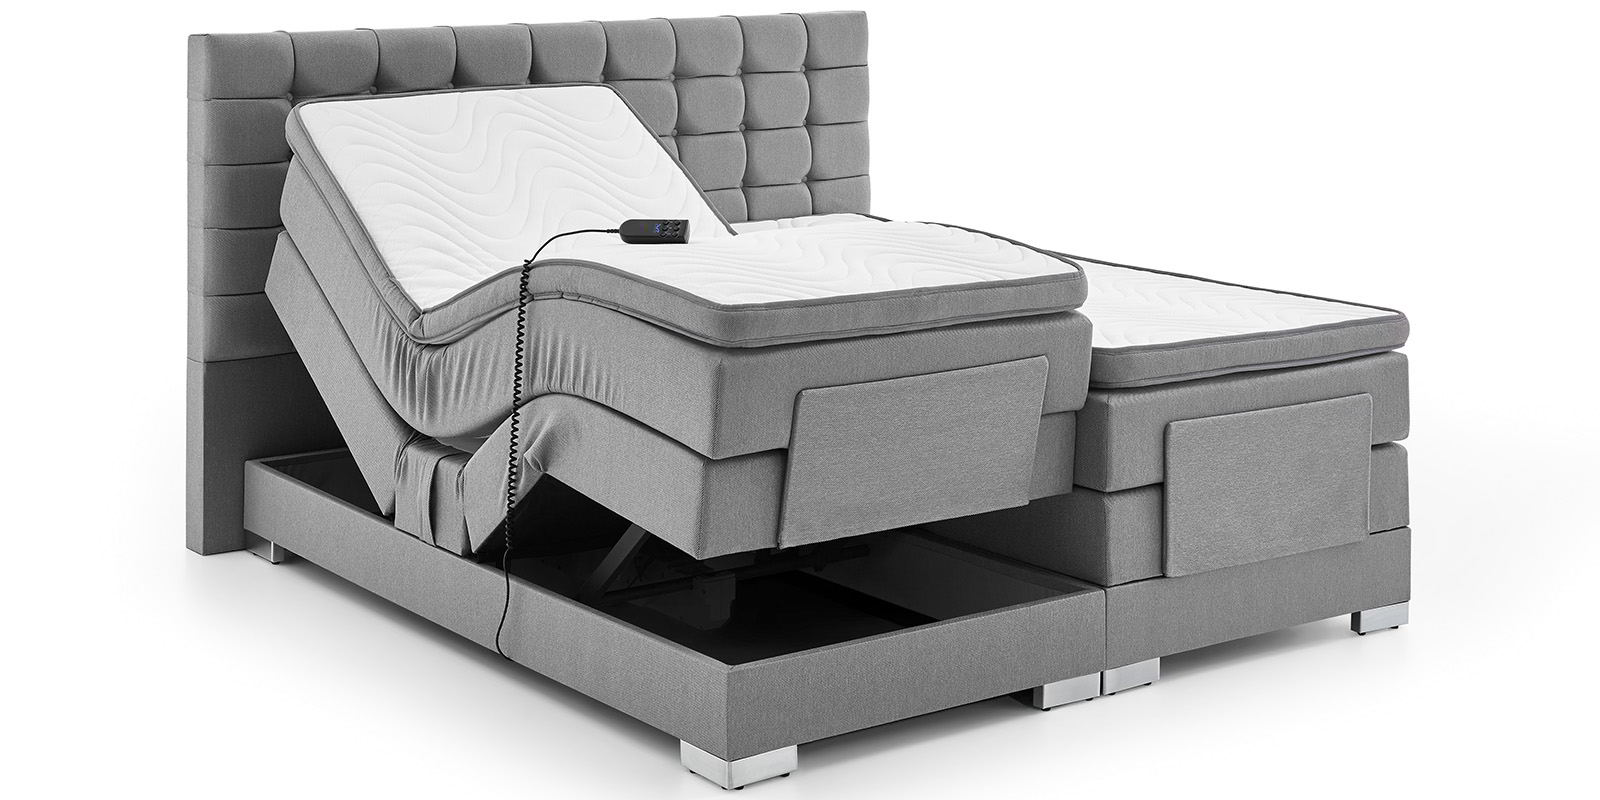 boxspringbett elektrisch verstellbar grau 180x200cm dublin moebella24. Black Bedroom Furniture Sets. Home Design Ideas